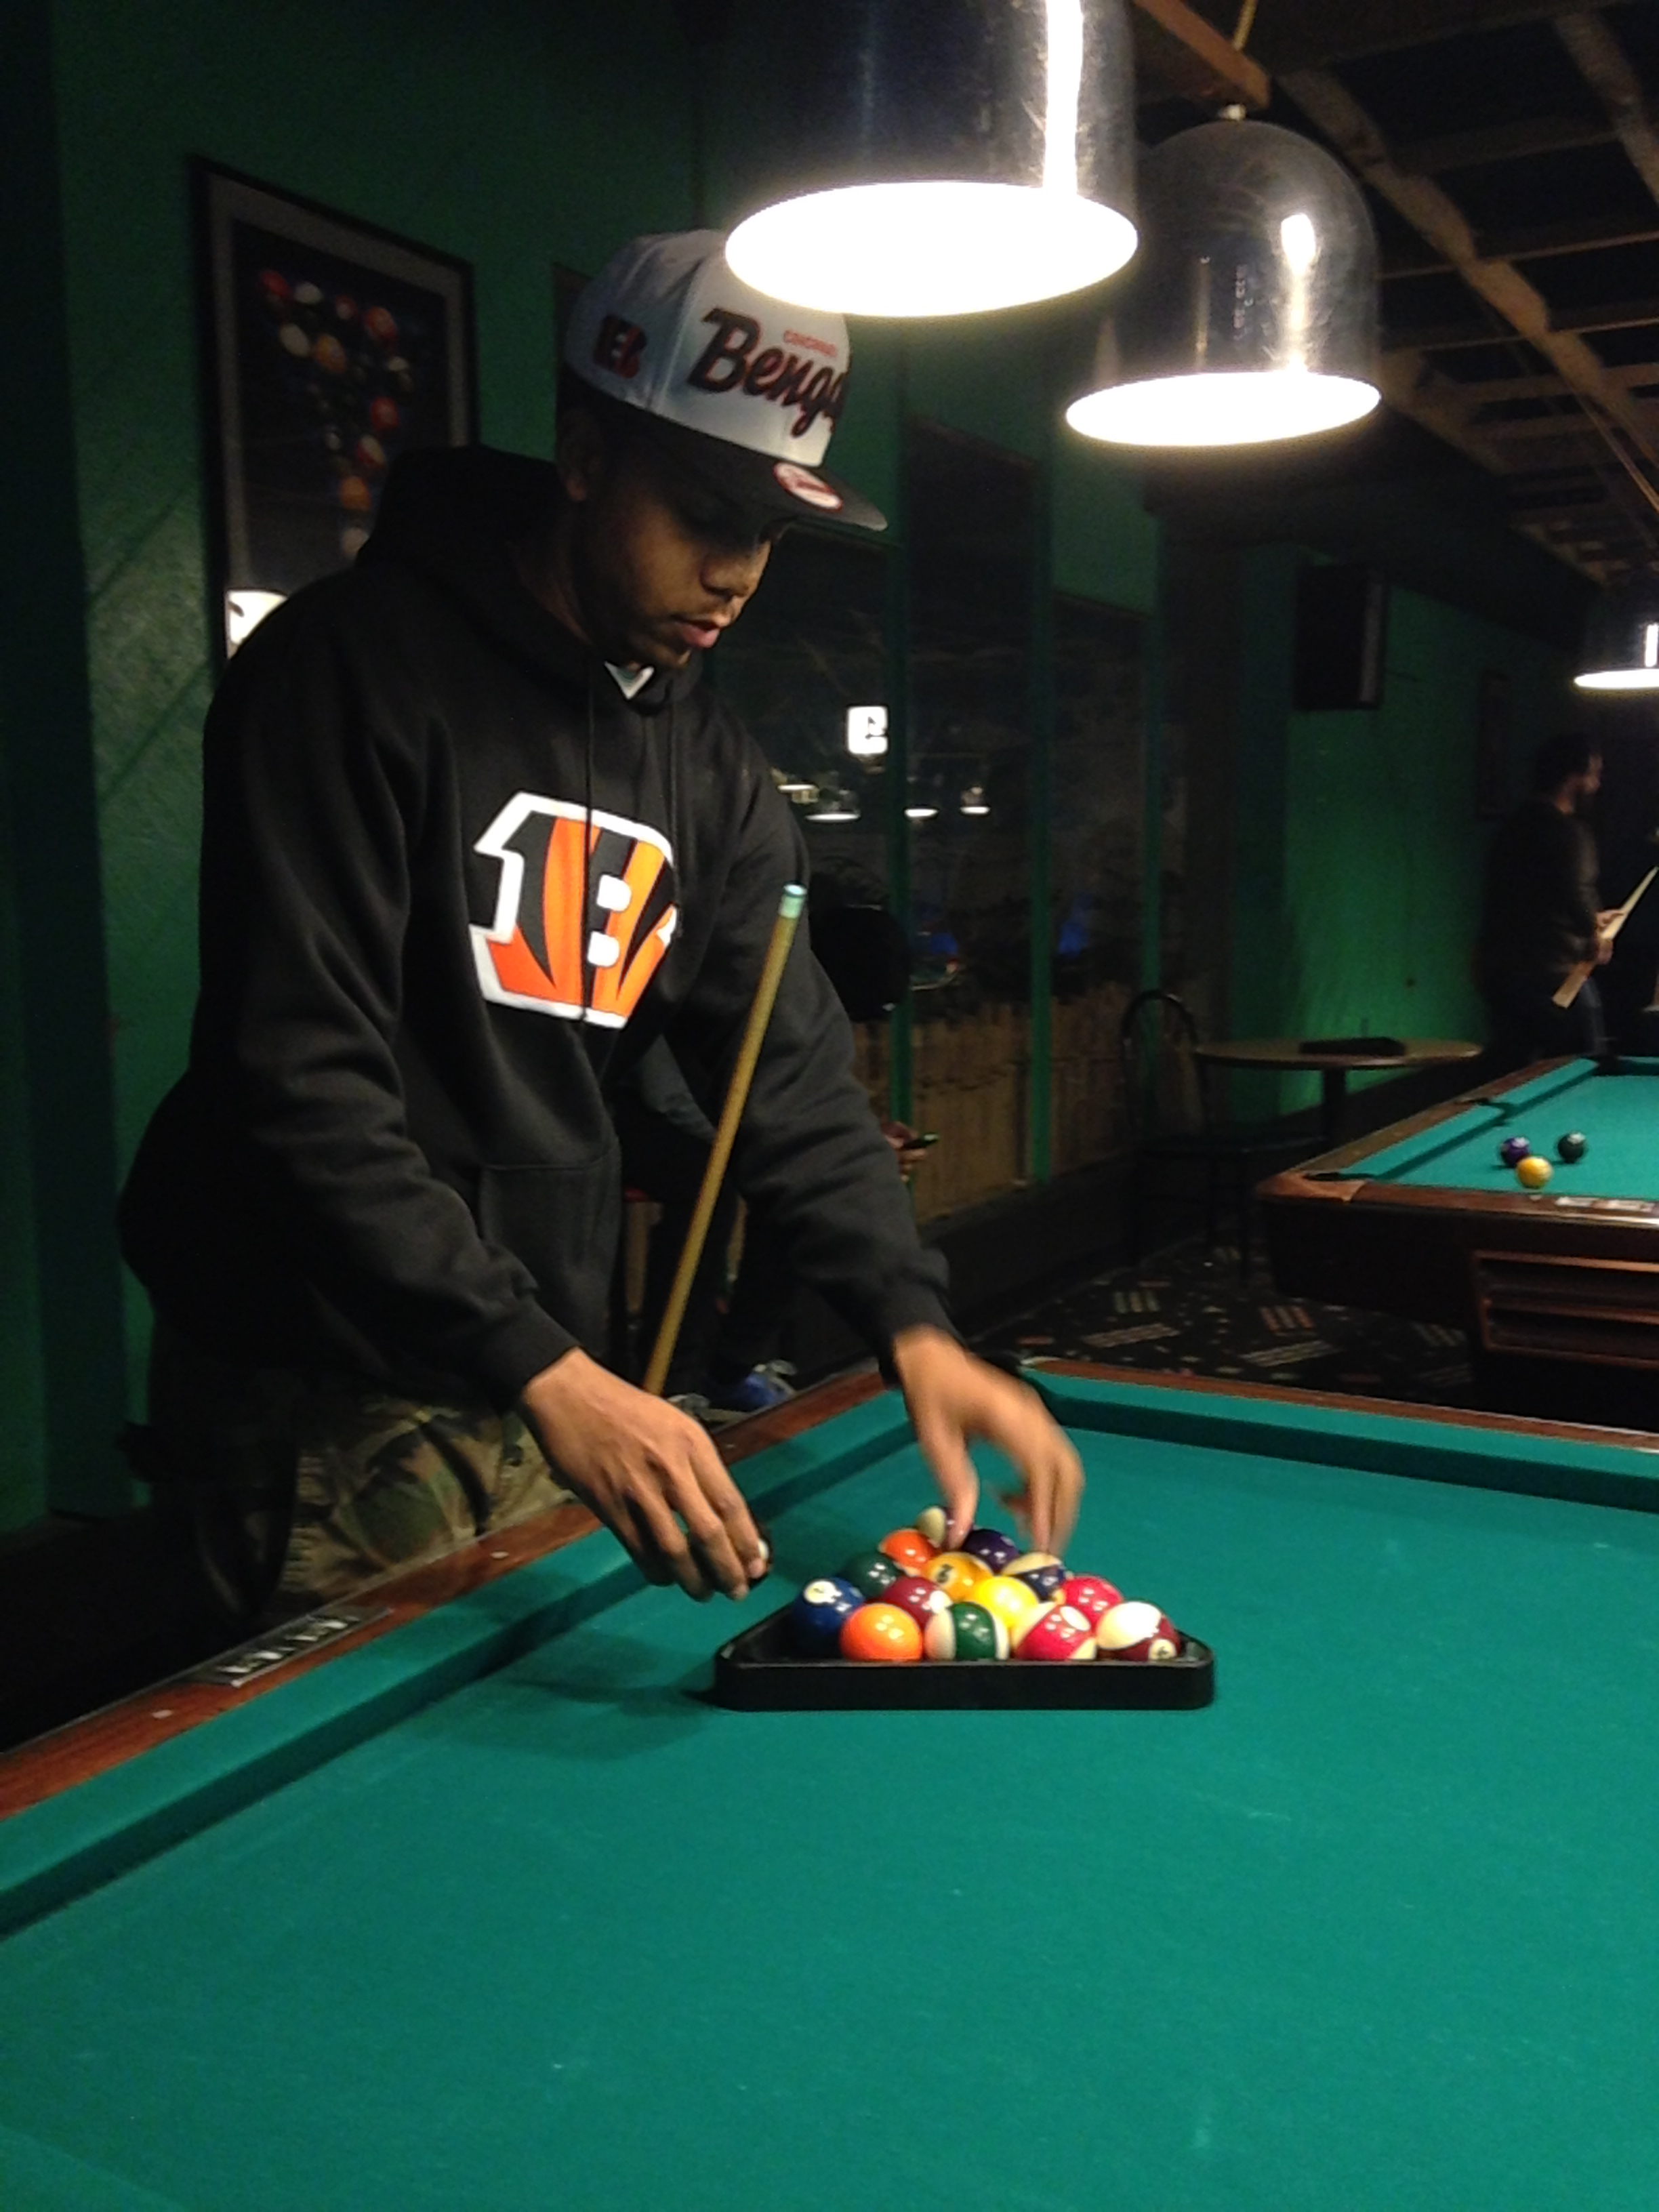 Dj J Dough preparing the pool table.